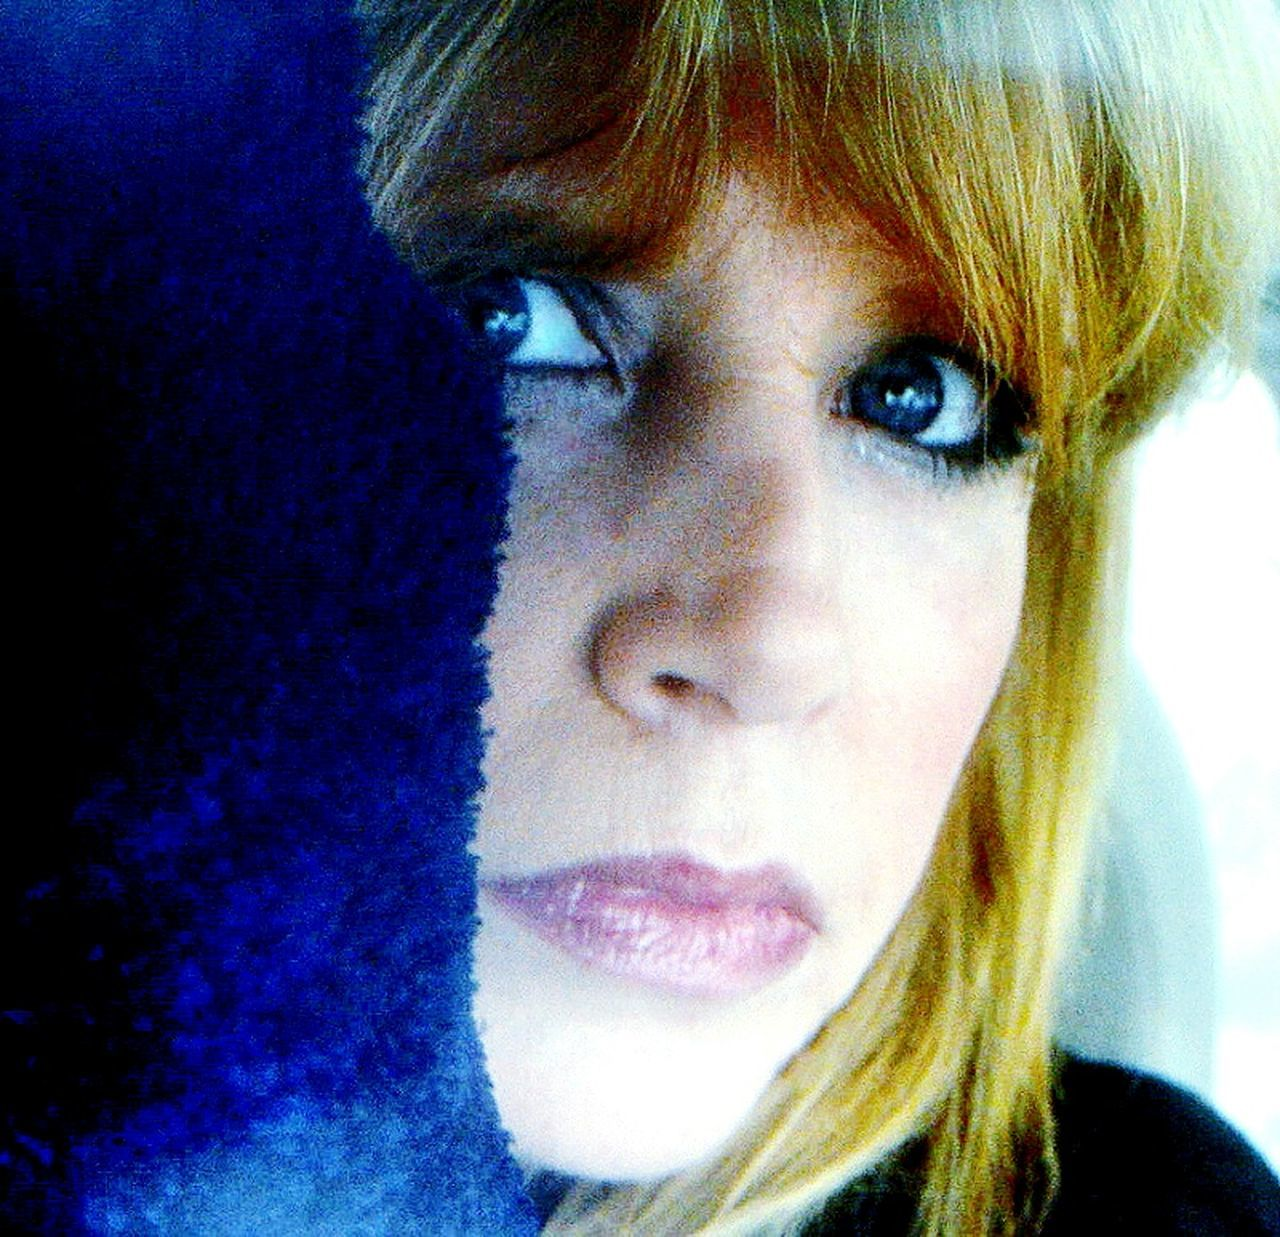 Mainephotographer After Near Death Experience You Know Everything Memories ❤ Risking My Life To Protect Your Freedom Whistleblowers Need Love Perspective Photography Nikonphotography For Sale Manual Focus Selfie ✌ Self Portrait Reflection_collection Car Rearviewmirrorshot Nikonphotographer Mainethewaylifeshouldbe Mainephotograher Over 50 Year Old Blonde ♡